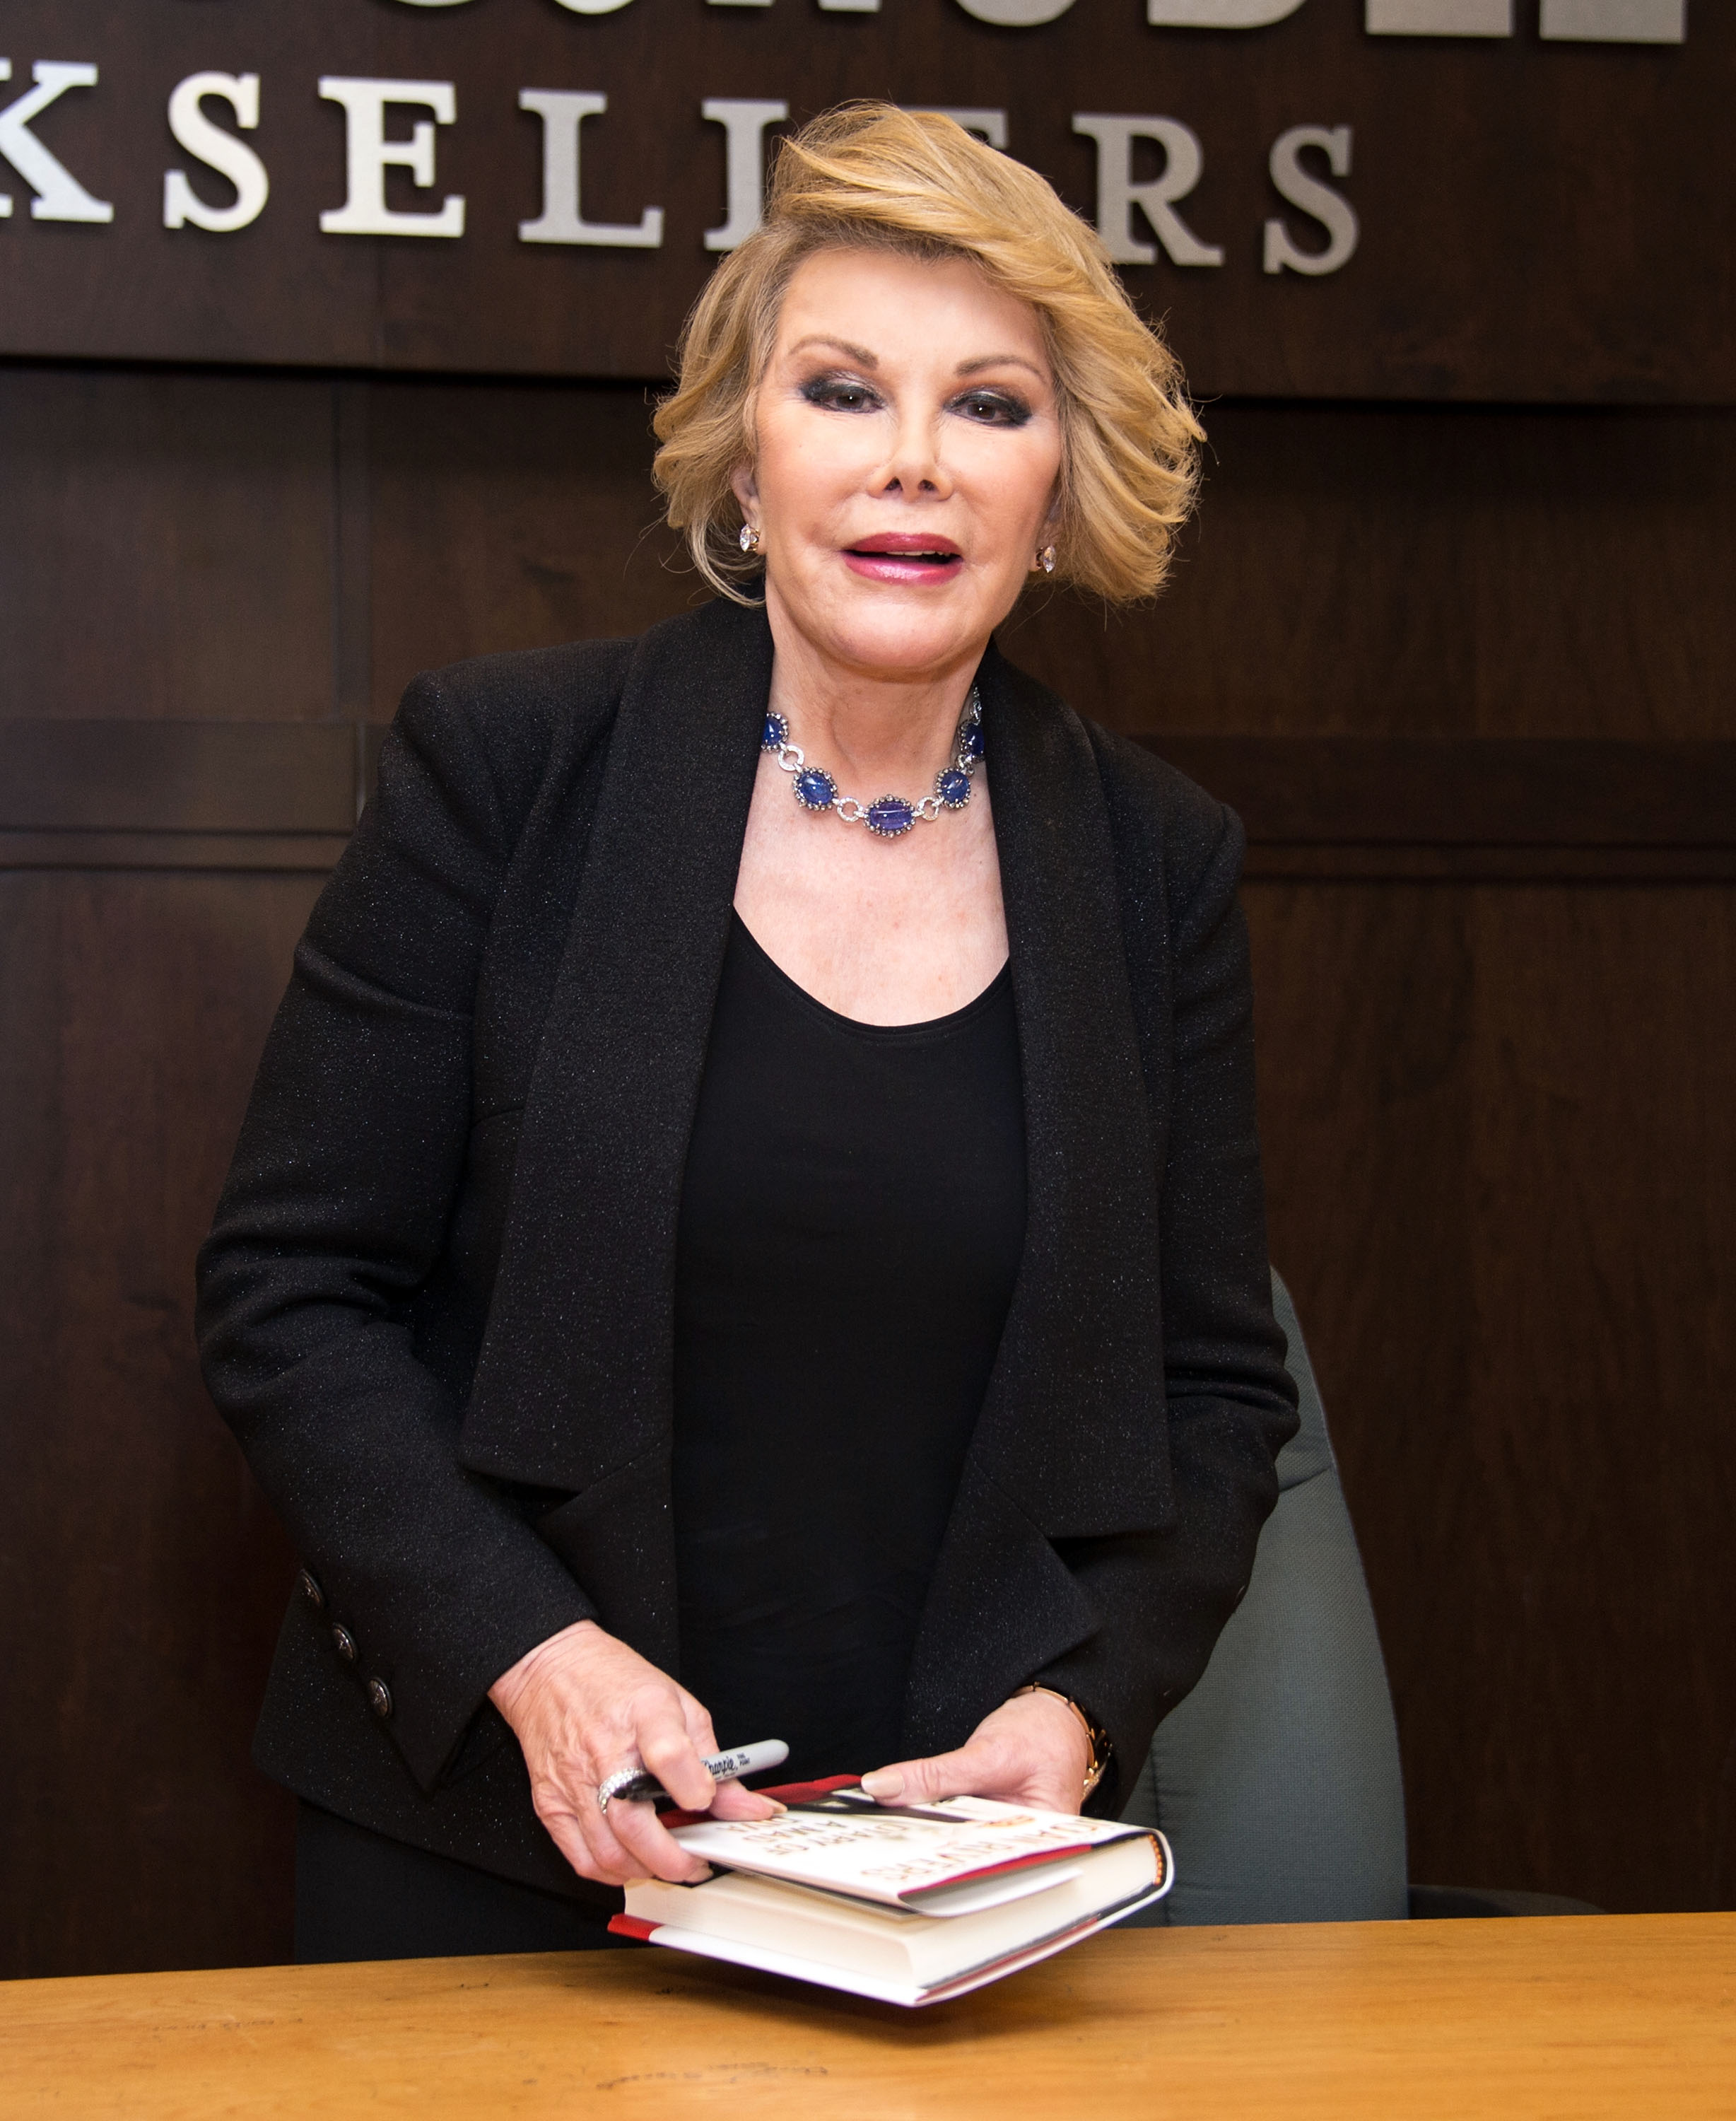 Comedian Joan Rivers poses before signing copies of her new book  Diary Of A Mad Diva  at Barnes & Noble bookstore at The Grove on July 10, 2014 in Los Angeles, California.